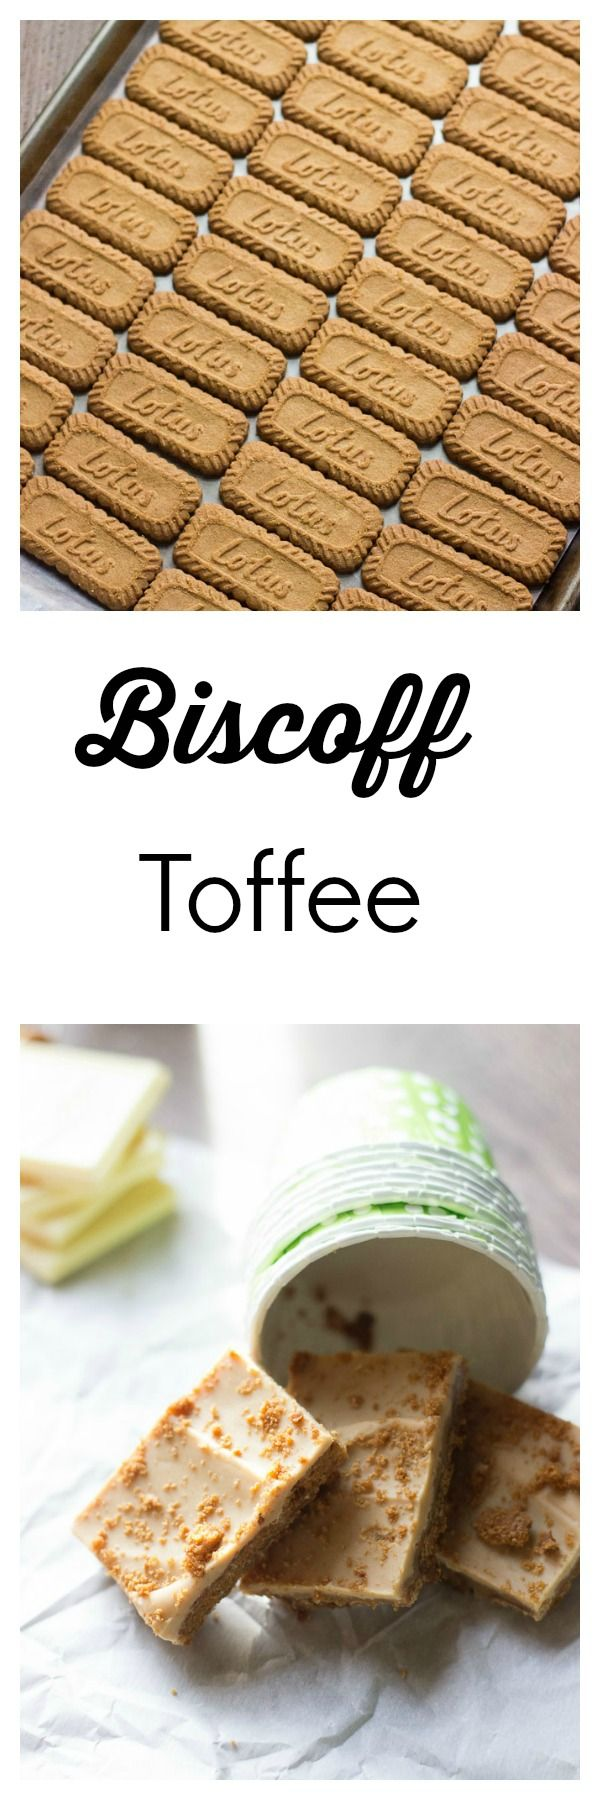 Biscoff coffee cookies recipes